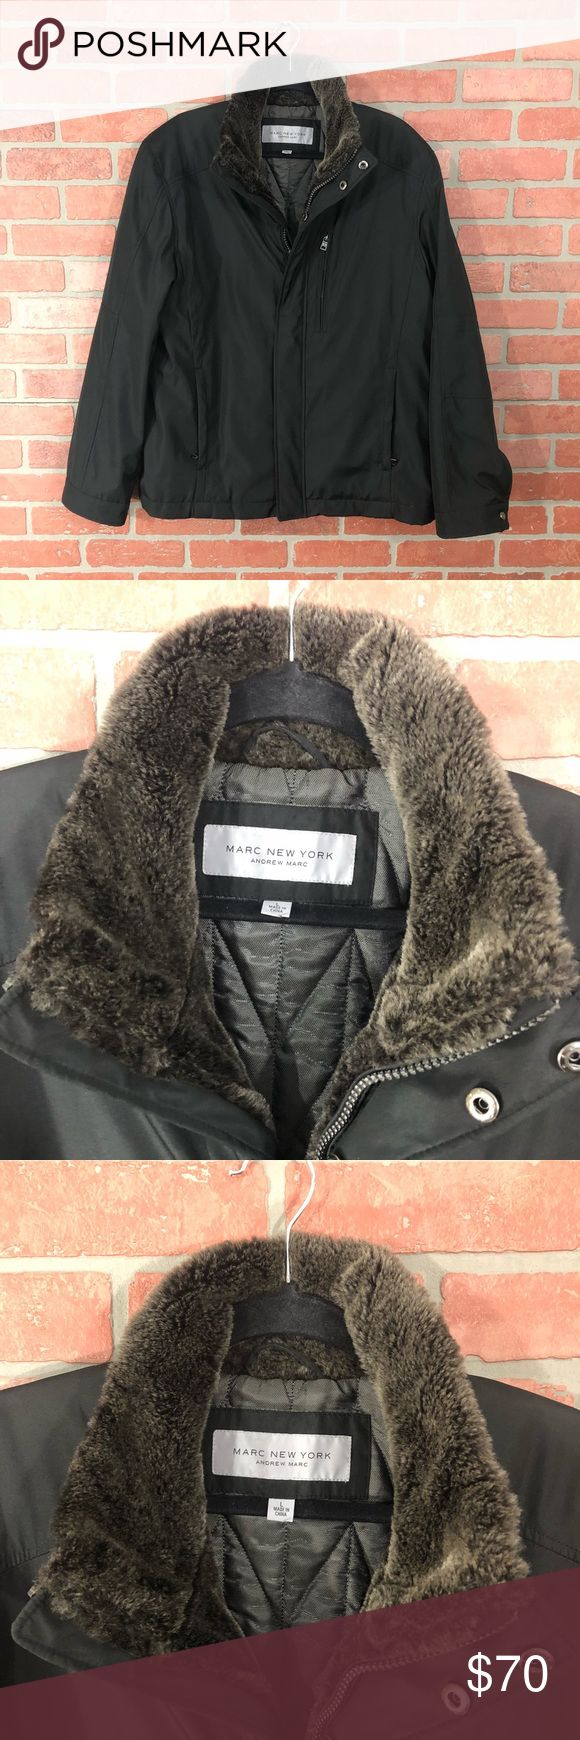 Marc New York Jacket - Andrew Marc Beautiful  Marc New York - Andrew Marc  Faux Fur Lined  Men's Size L  Shell: 100% polyester  Body: 50% Nylon 50% Acetate  Sleeve Lining: 100% polyester  Faux Fur Trim Andrew Marc Jackets & Coats